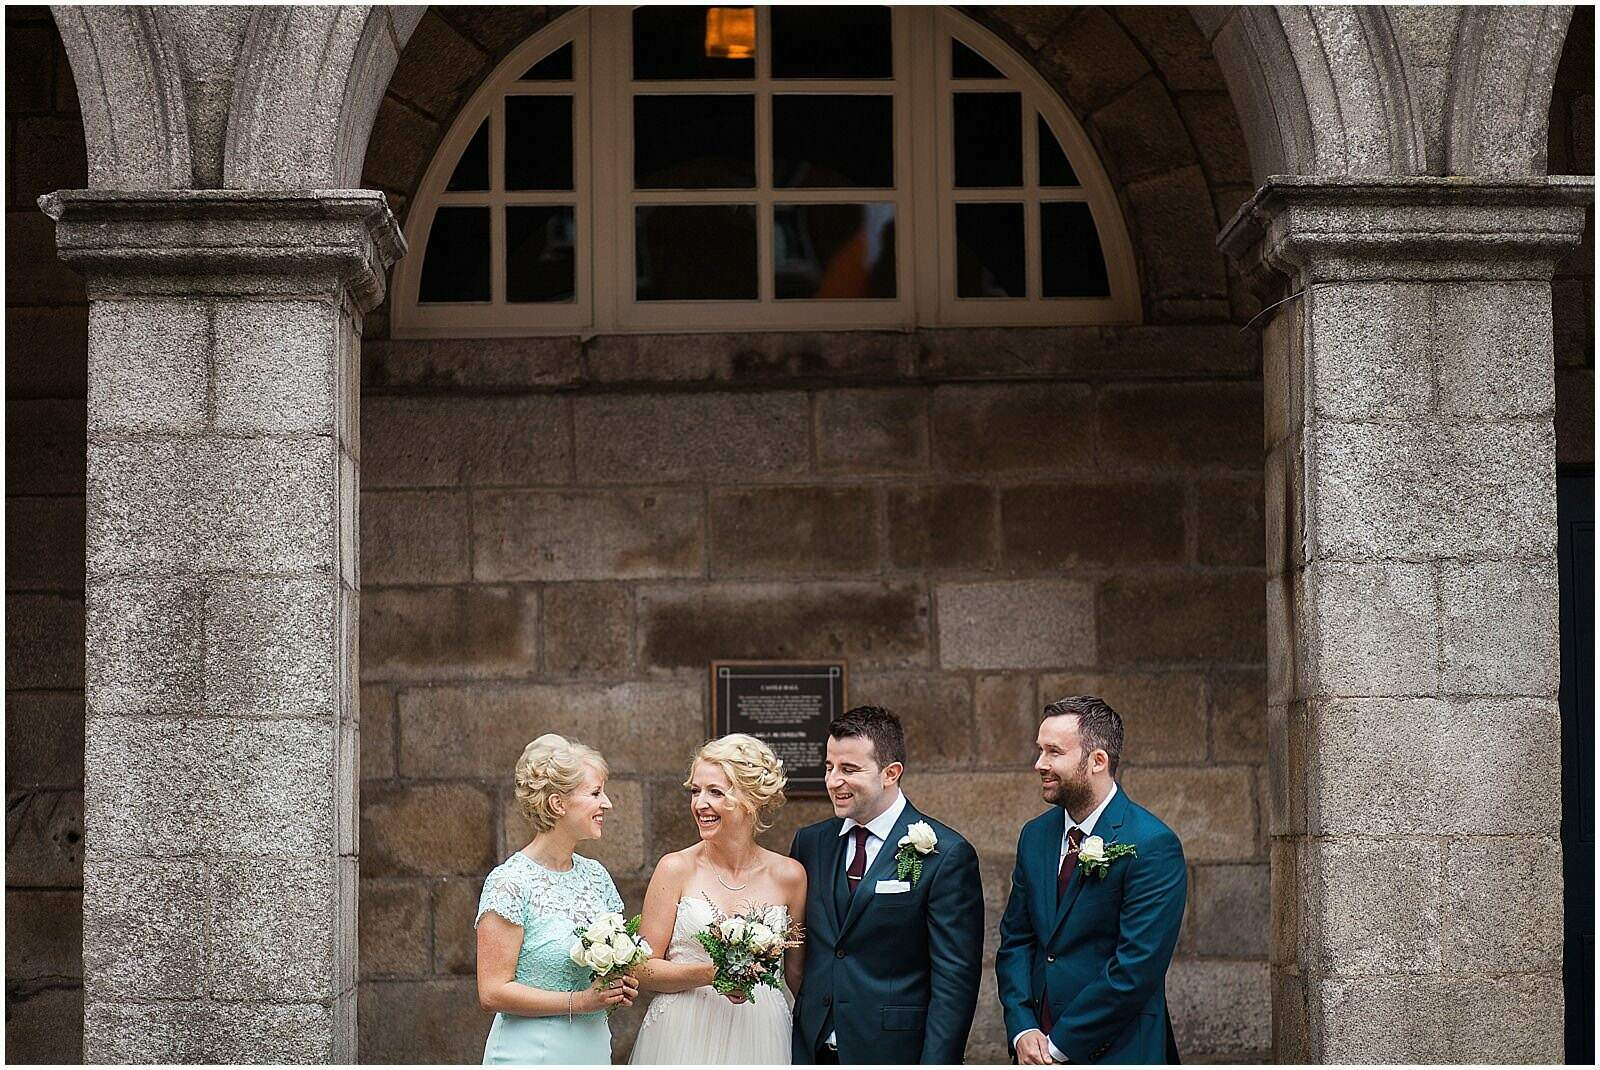 Johnny Corcoran Lifestyle Relaxed Unposed documentary Natural Wedding Portrait Photography Dublin Ireland 2242 - Fun and Relaxed wedding and elopement photography in Ireland, perfect for adventurous and outdoorsy couples